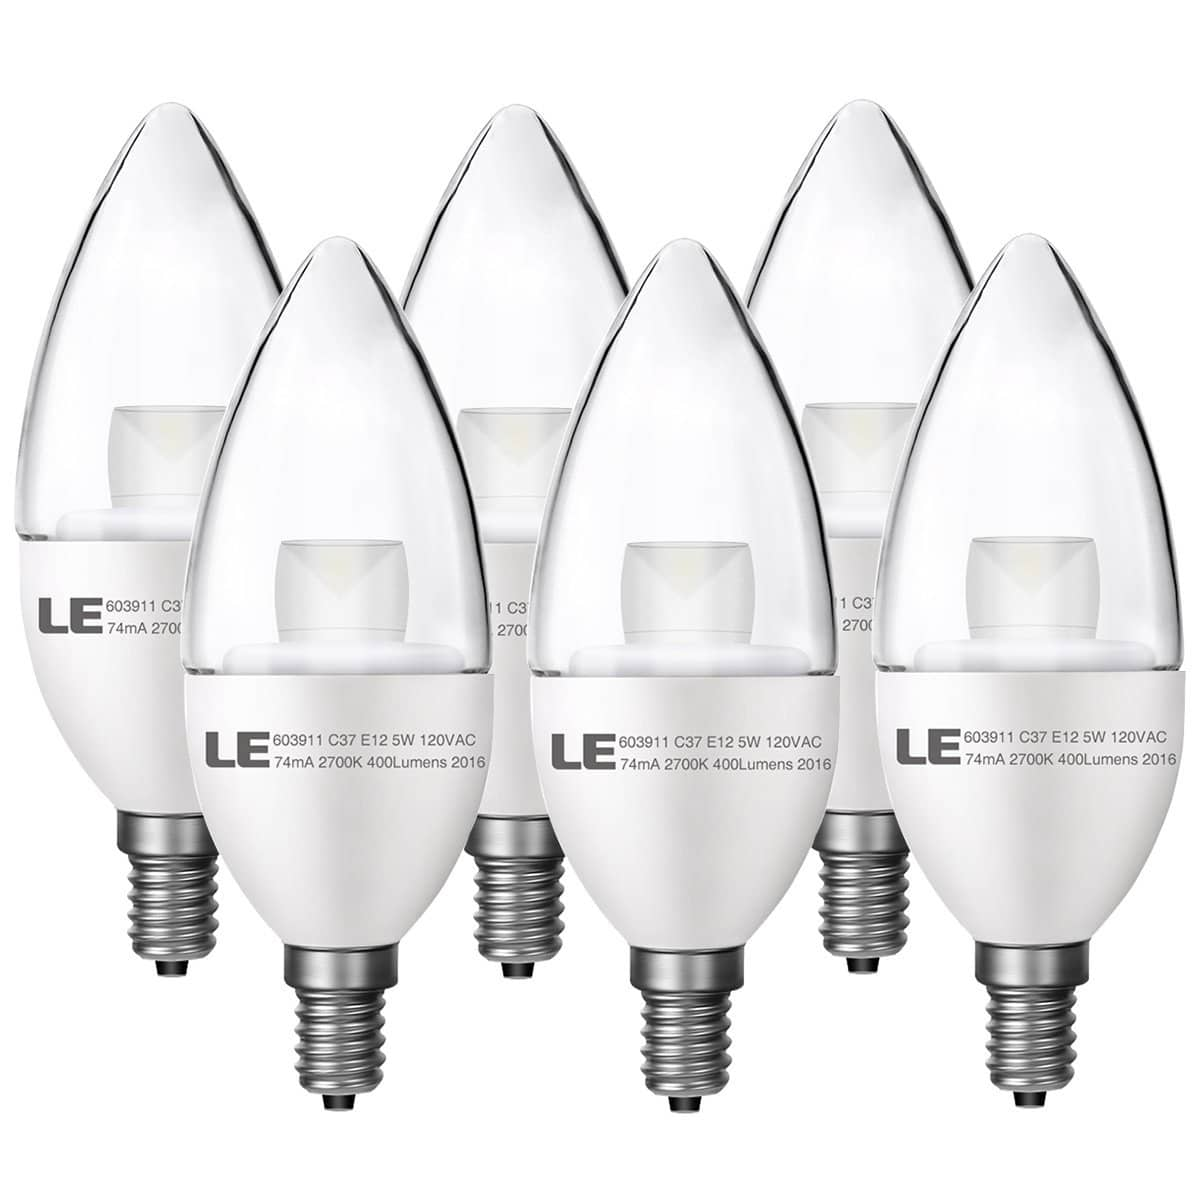 LE E12 Candle LED Light Bulbs, 5W (40W Incandescent Equivalent) 6-pack $9.99 or 3-pack $7.99 A/C + Free Amazon Prime shipping